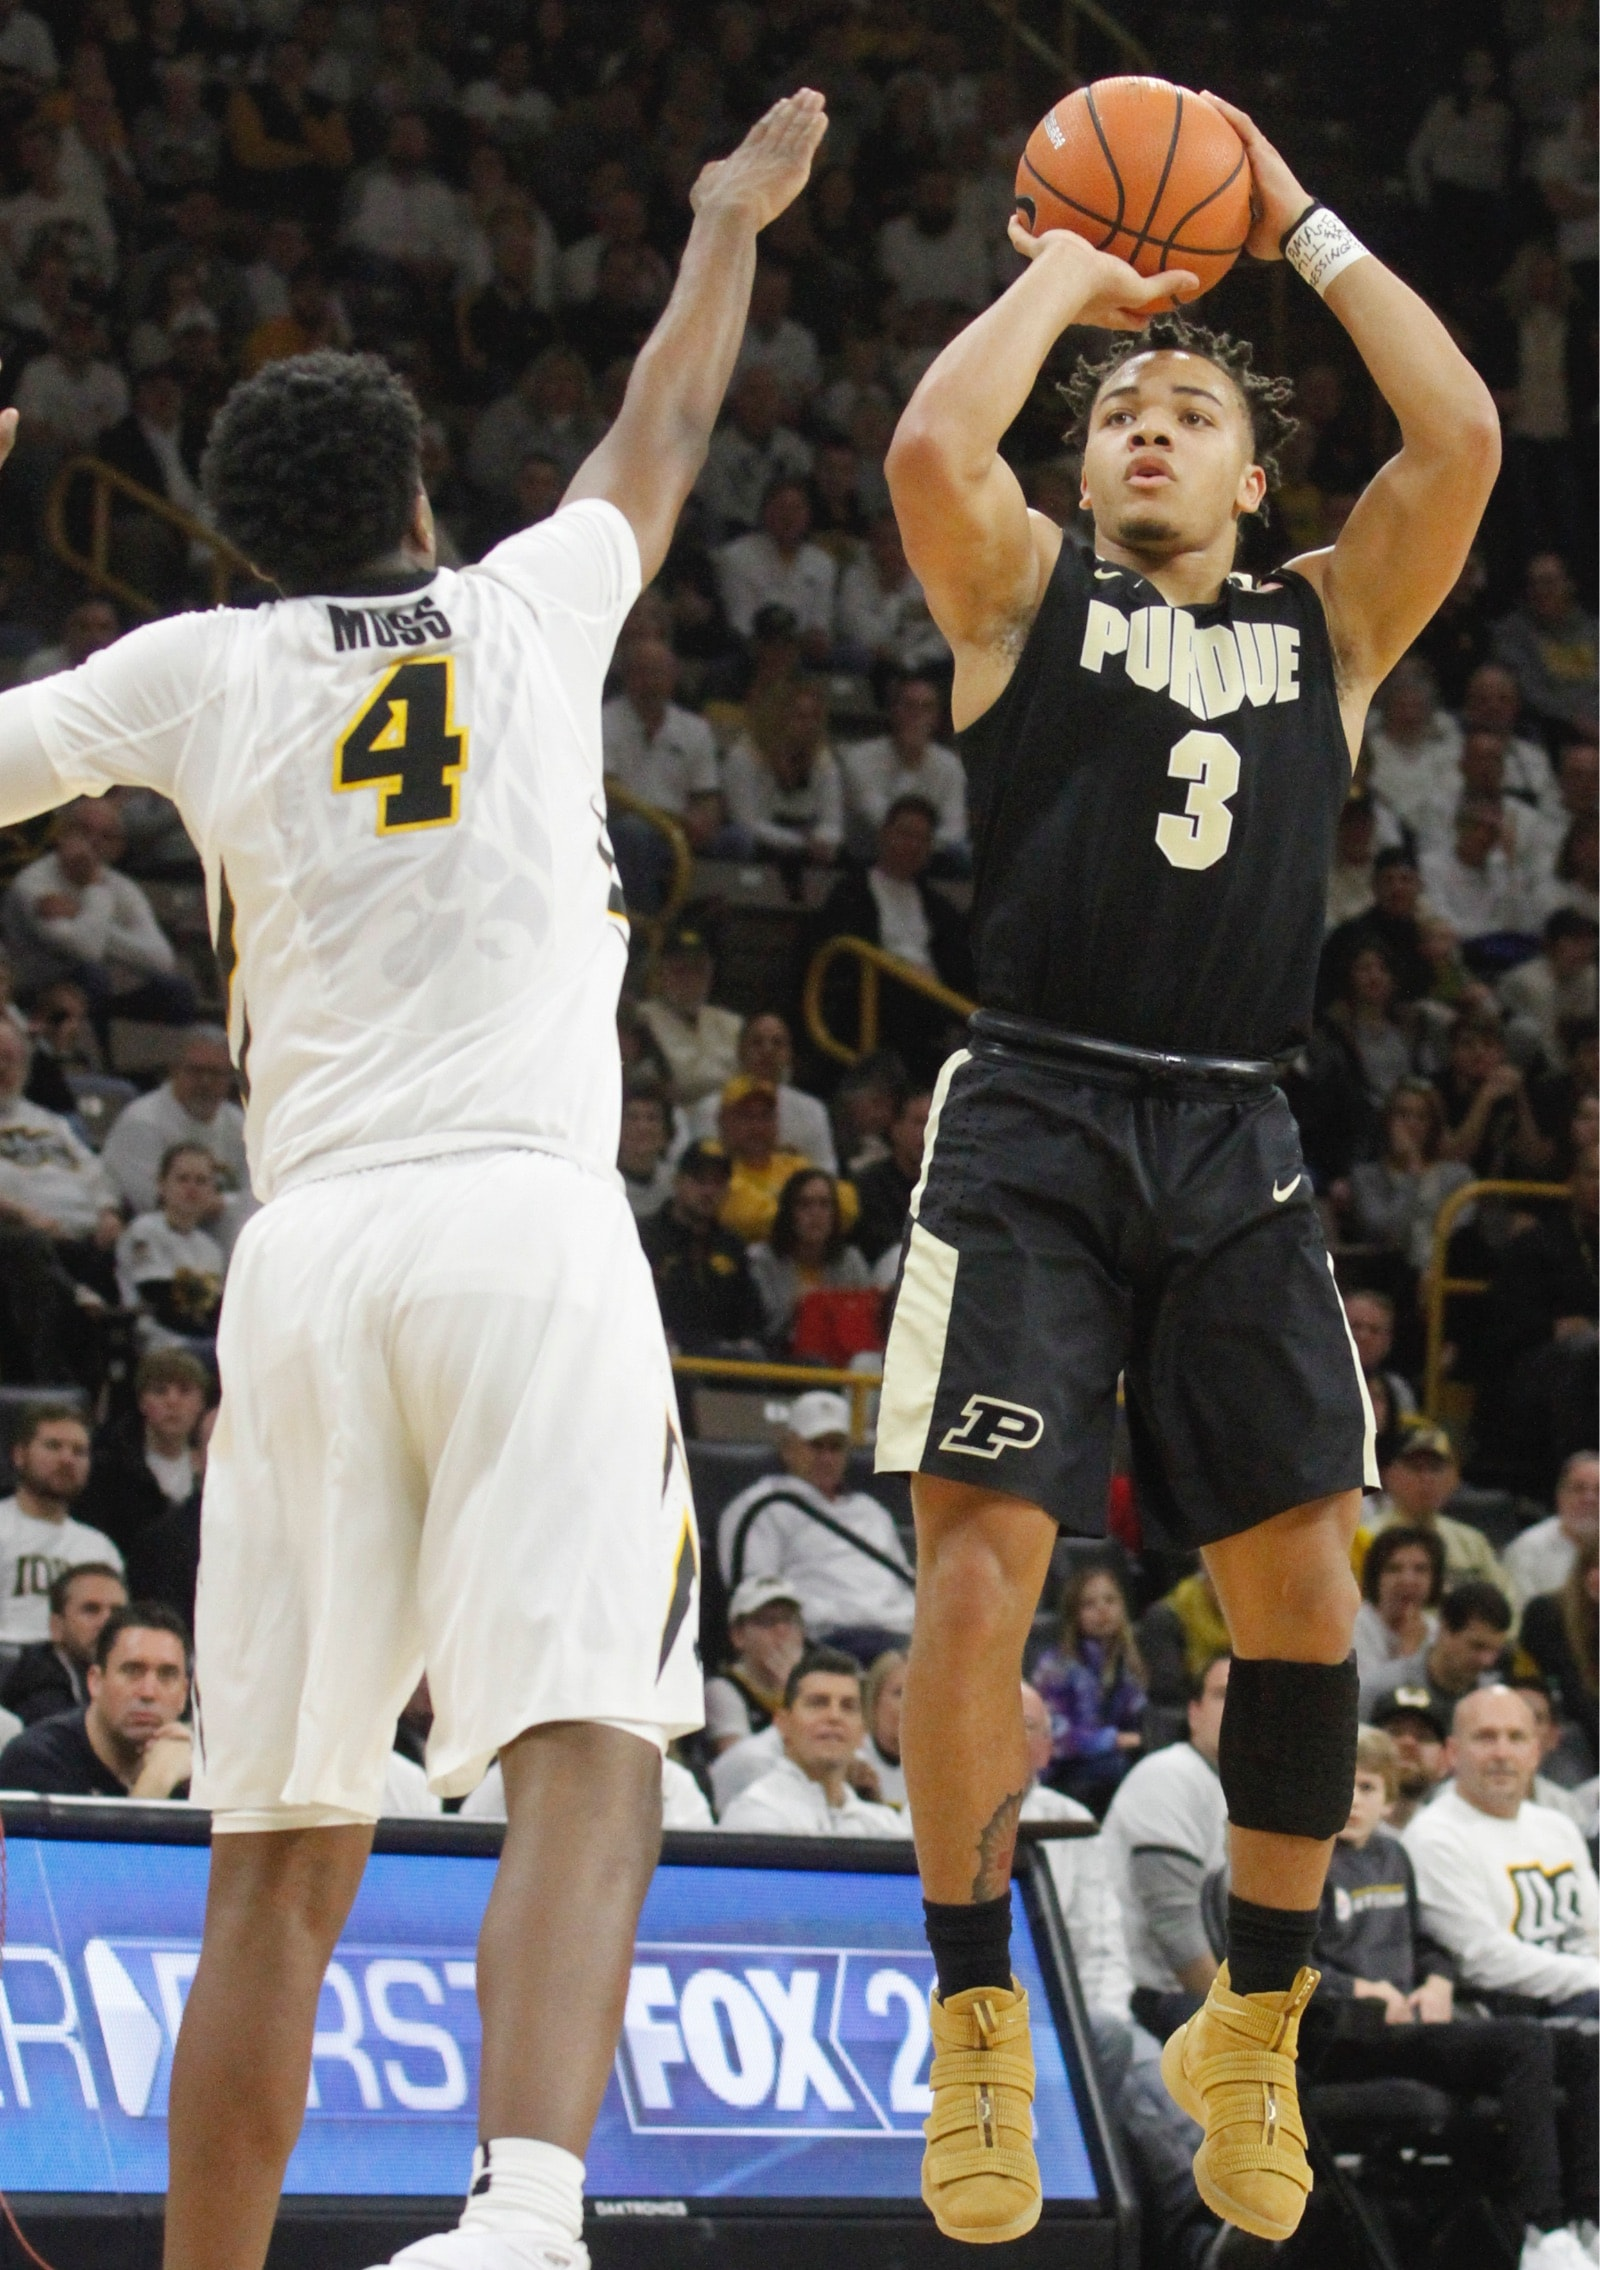 Guard Carson Edwards #3 of the Purdue Boilermakers takes a shot during the first half in front of guard Isaiah Moss #4 of the Iowa Hawkeyes on January 20, 2018 at Carver-Hawkeye Arena, in Iowa City, Iowa.